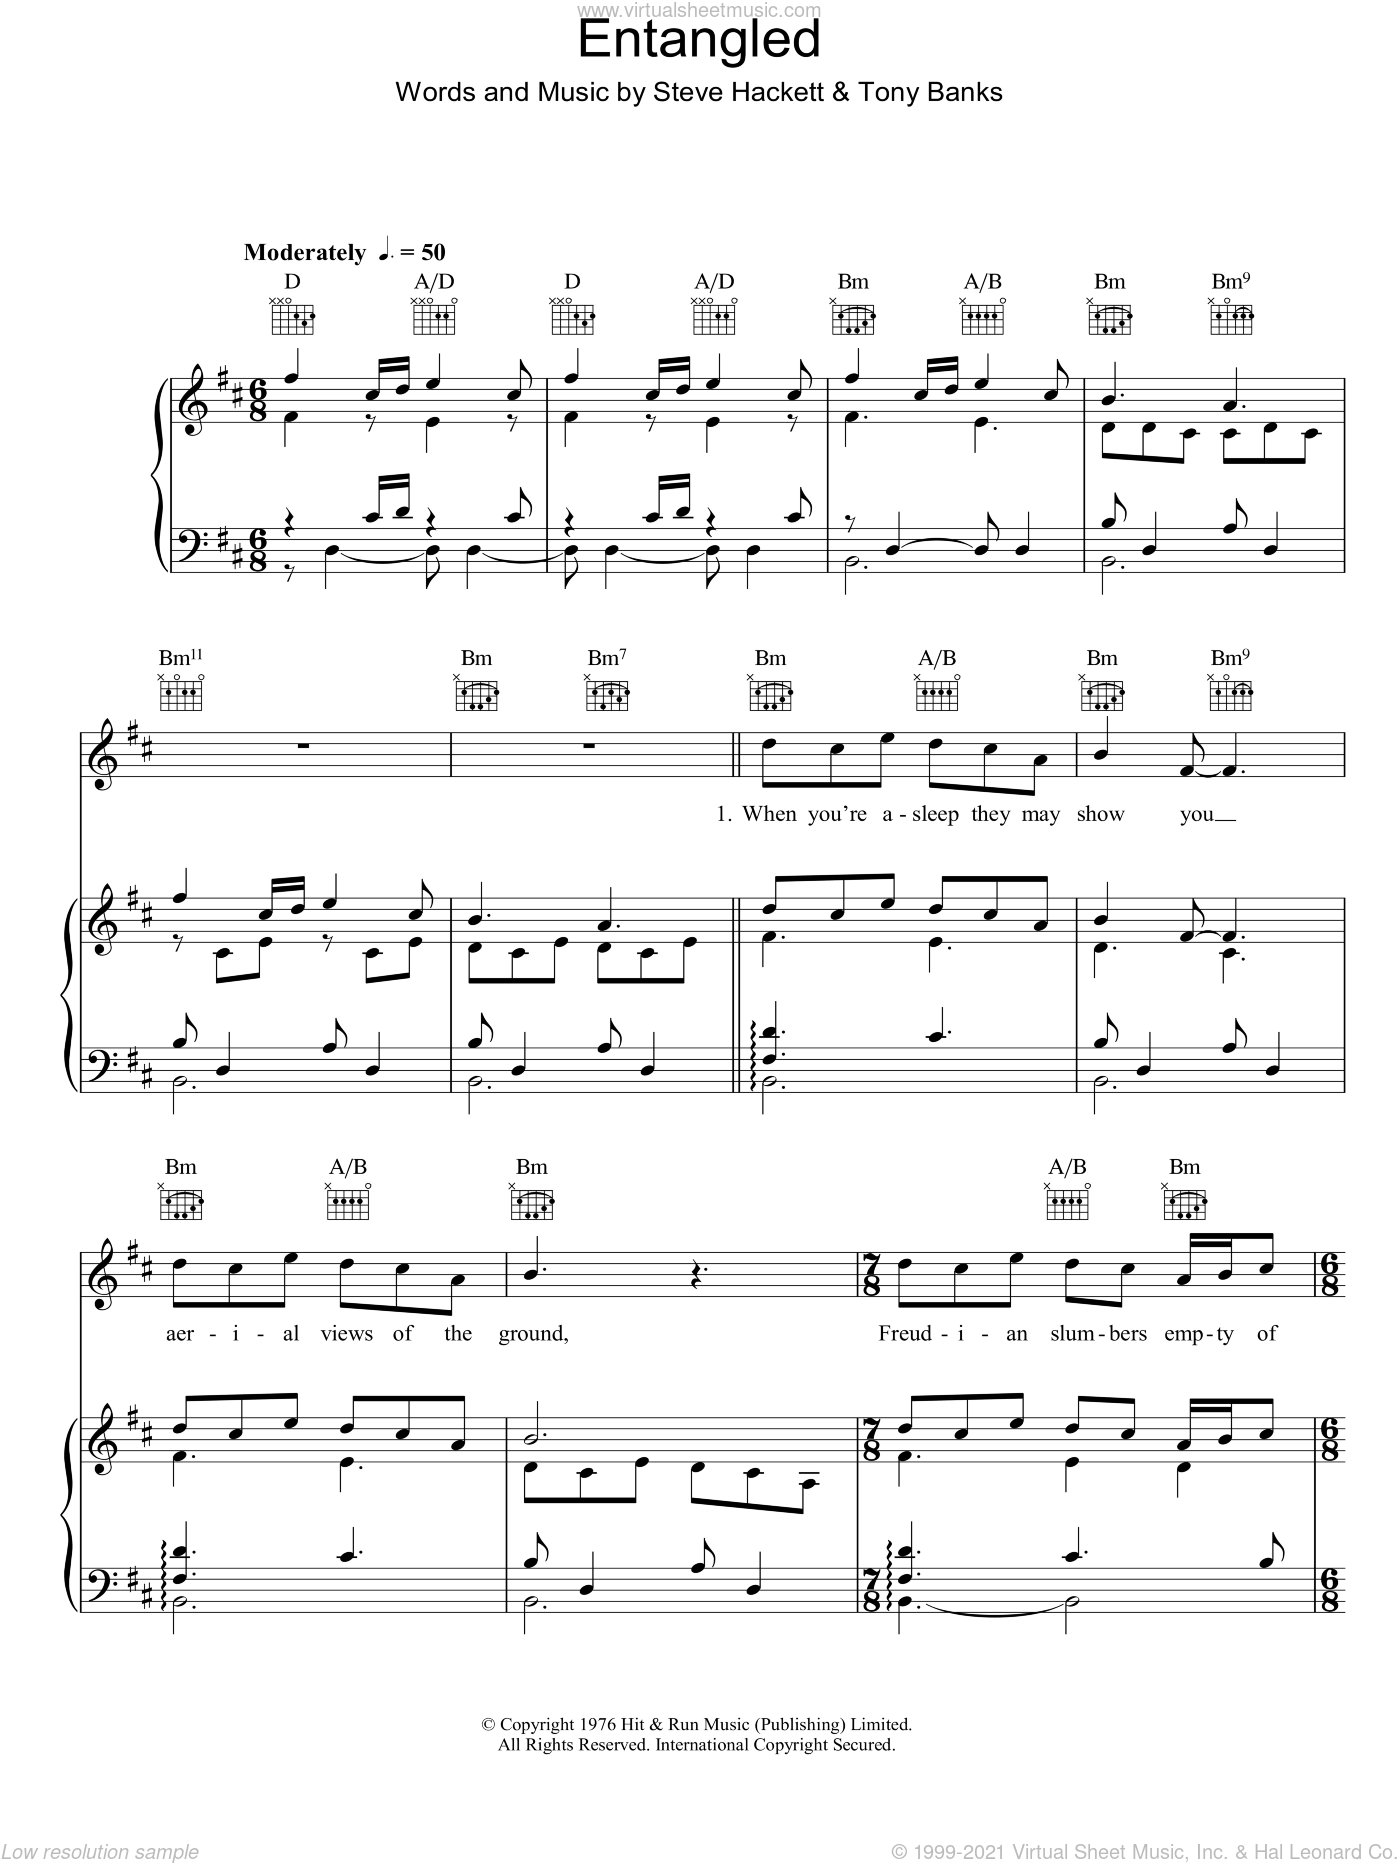 Entangled sheet music for voice, piano or guitar by Genesis, Steve Hackett and Tony Banks, intermediate skill level